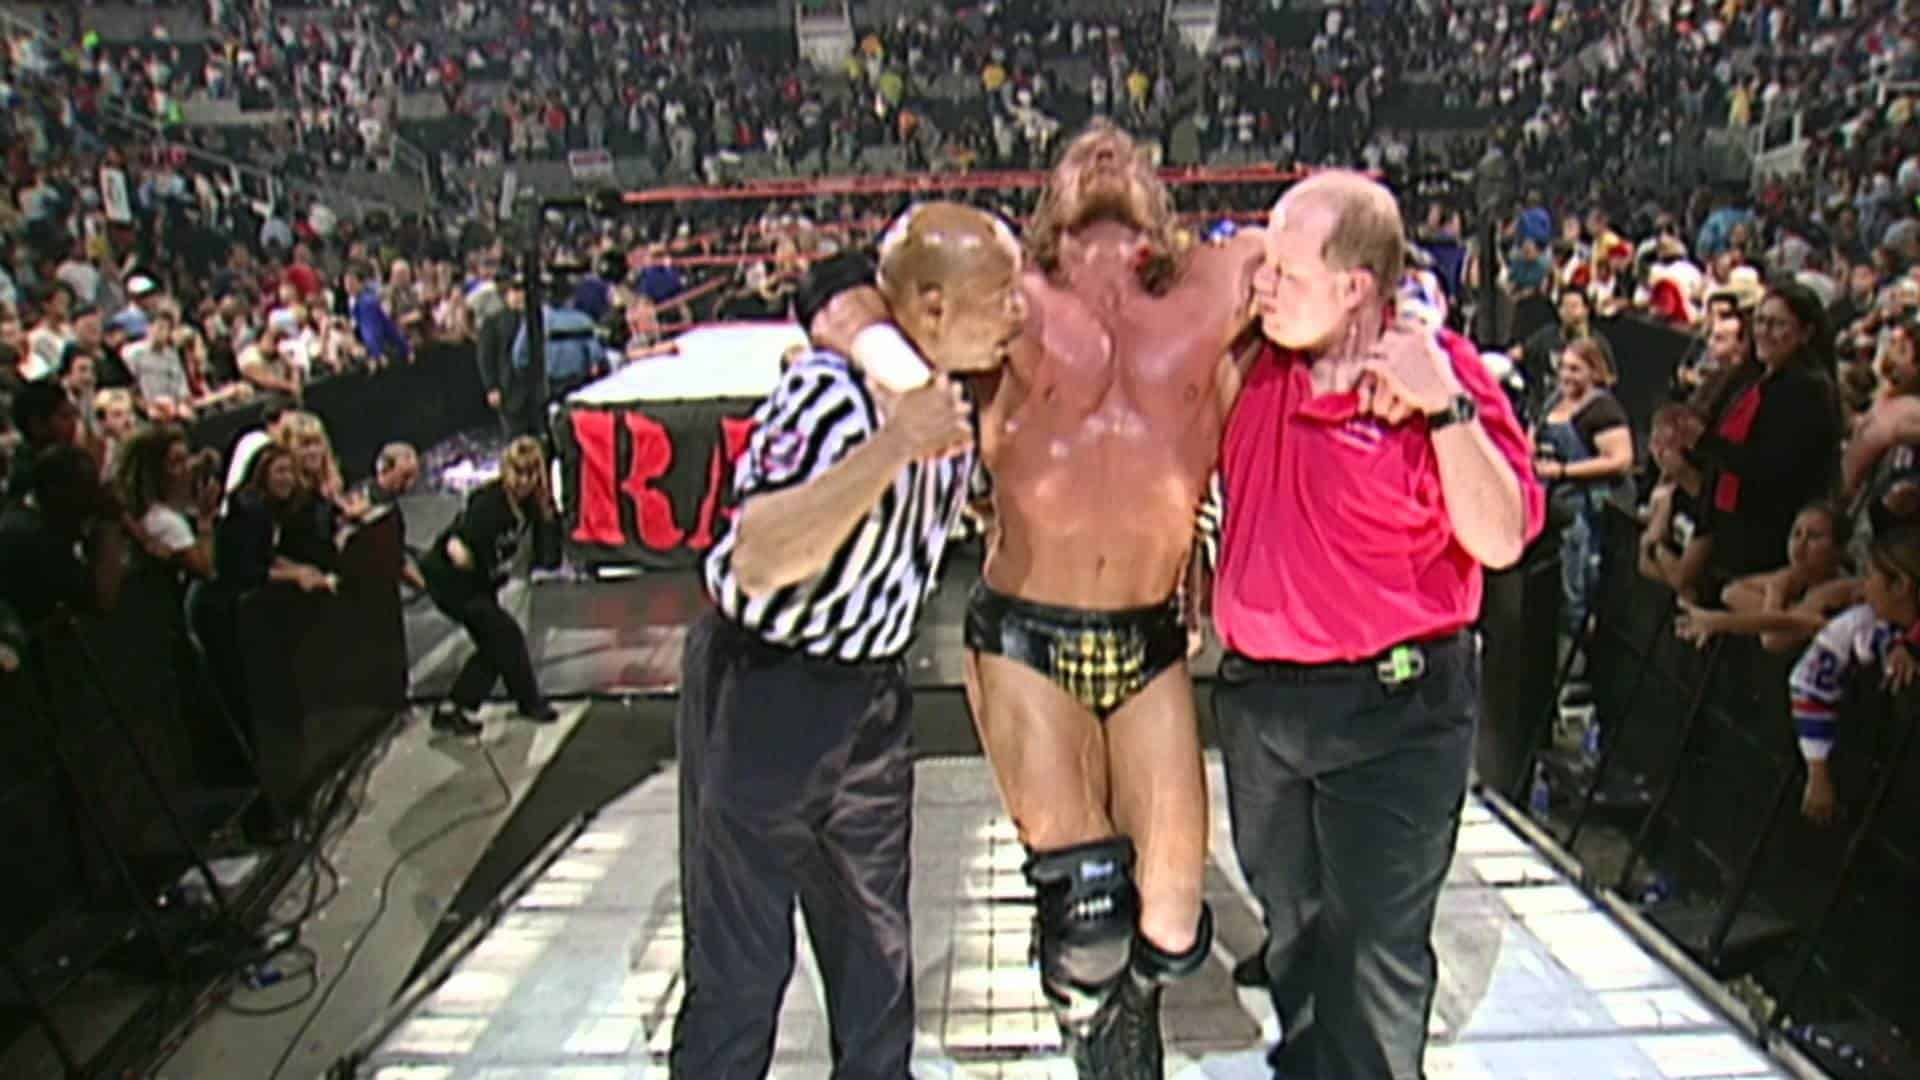 After a Triple H Injury of a Quad Tear to the Left Side he's shown leaning on a referee and trainer exiting the ring in extreme pain